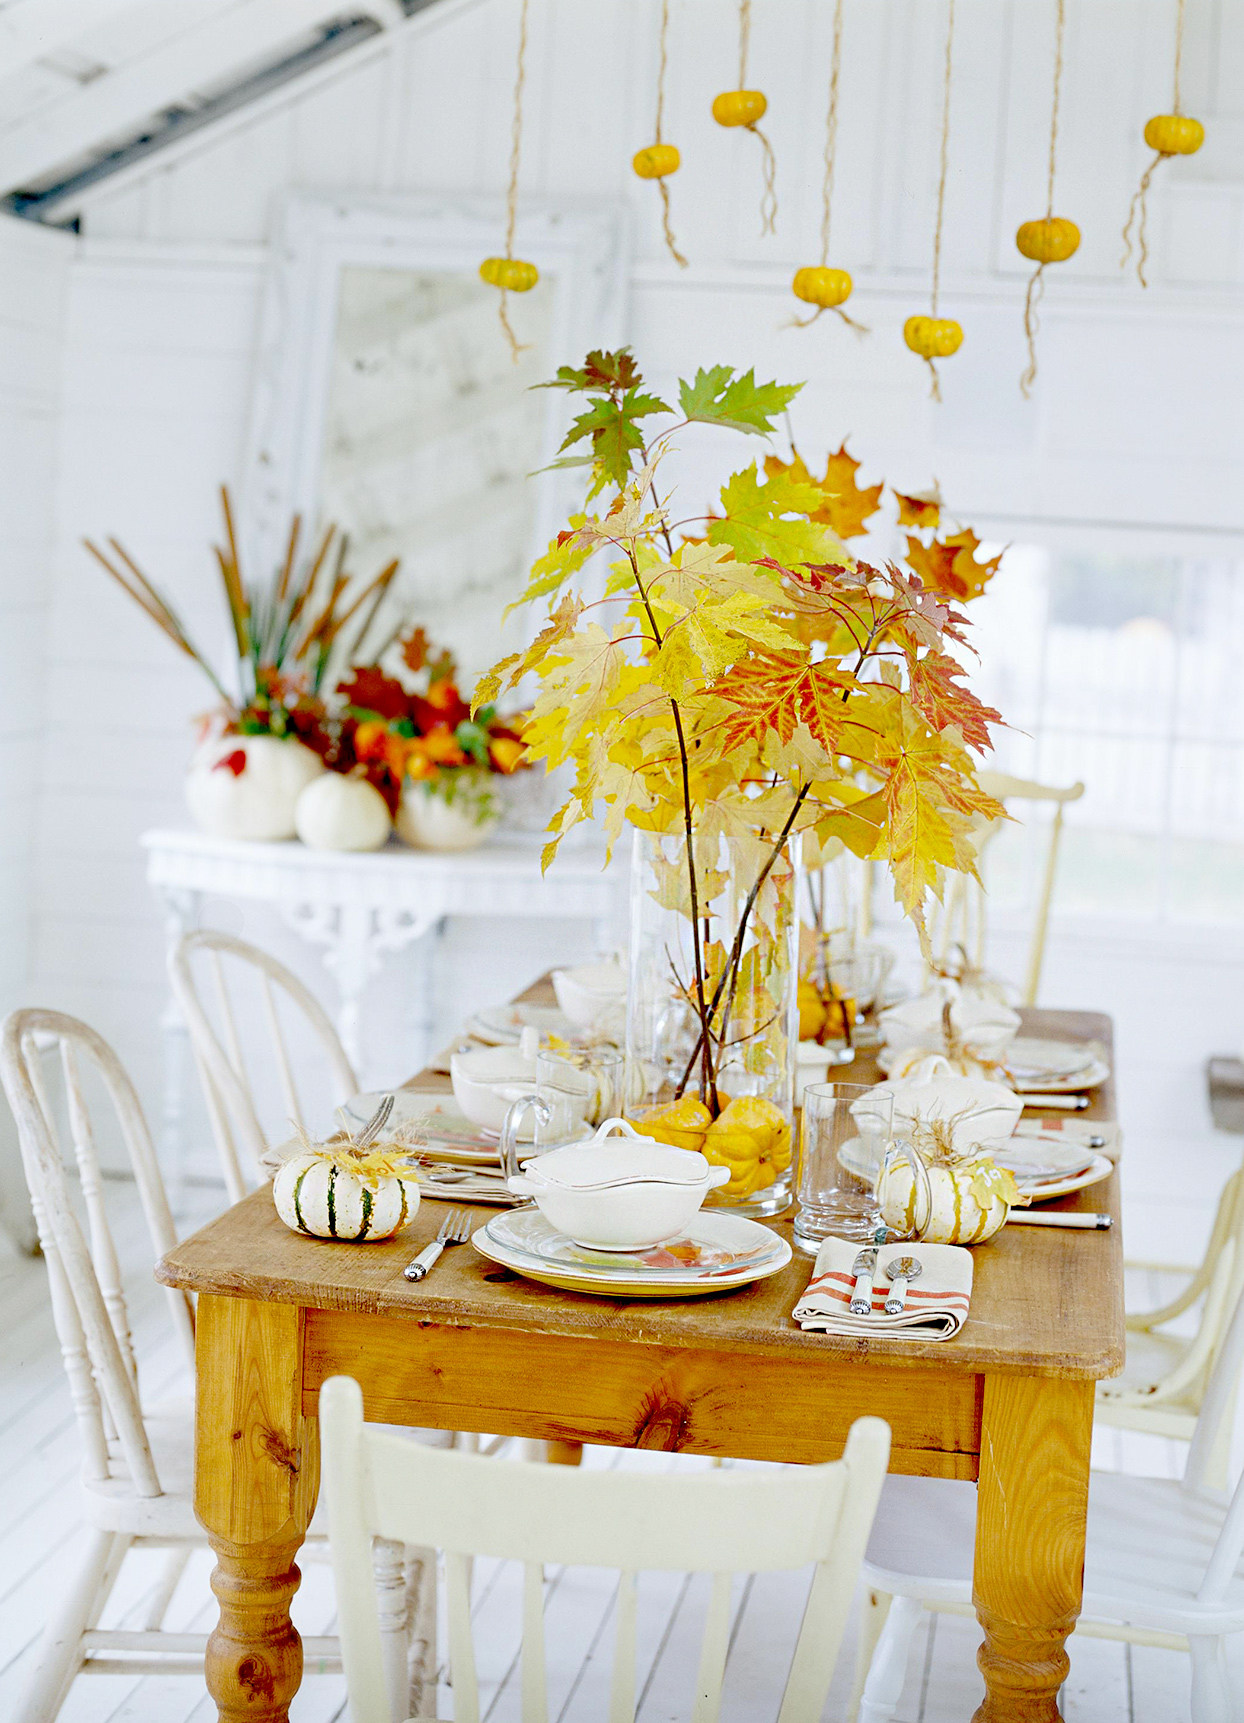 Table with leaf centerpiece and hanging small pumpkins